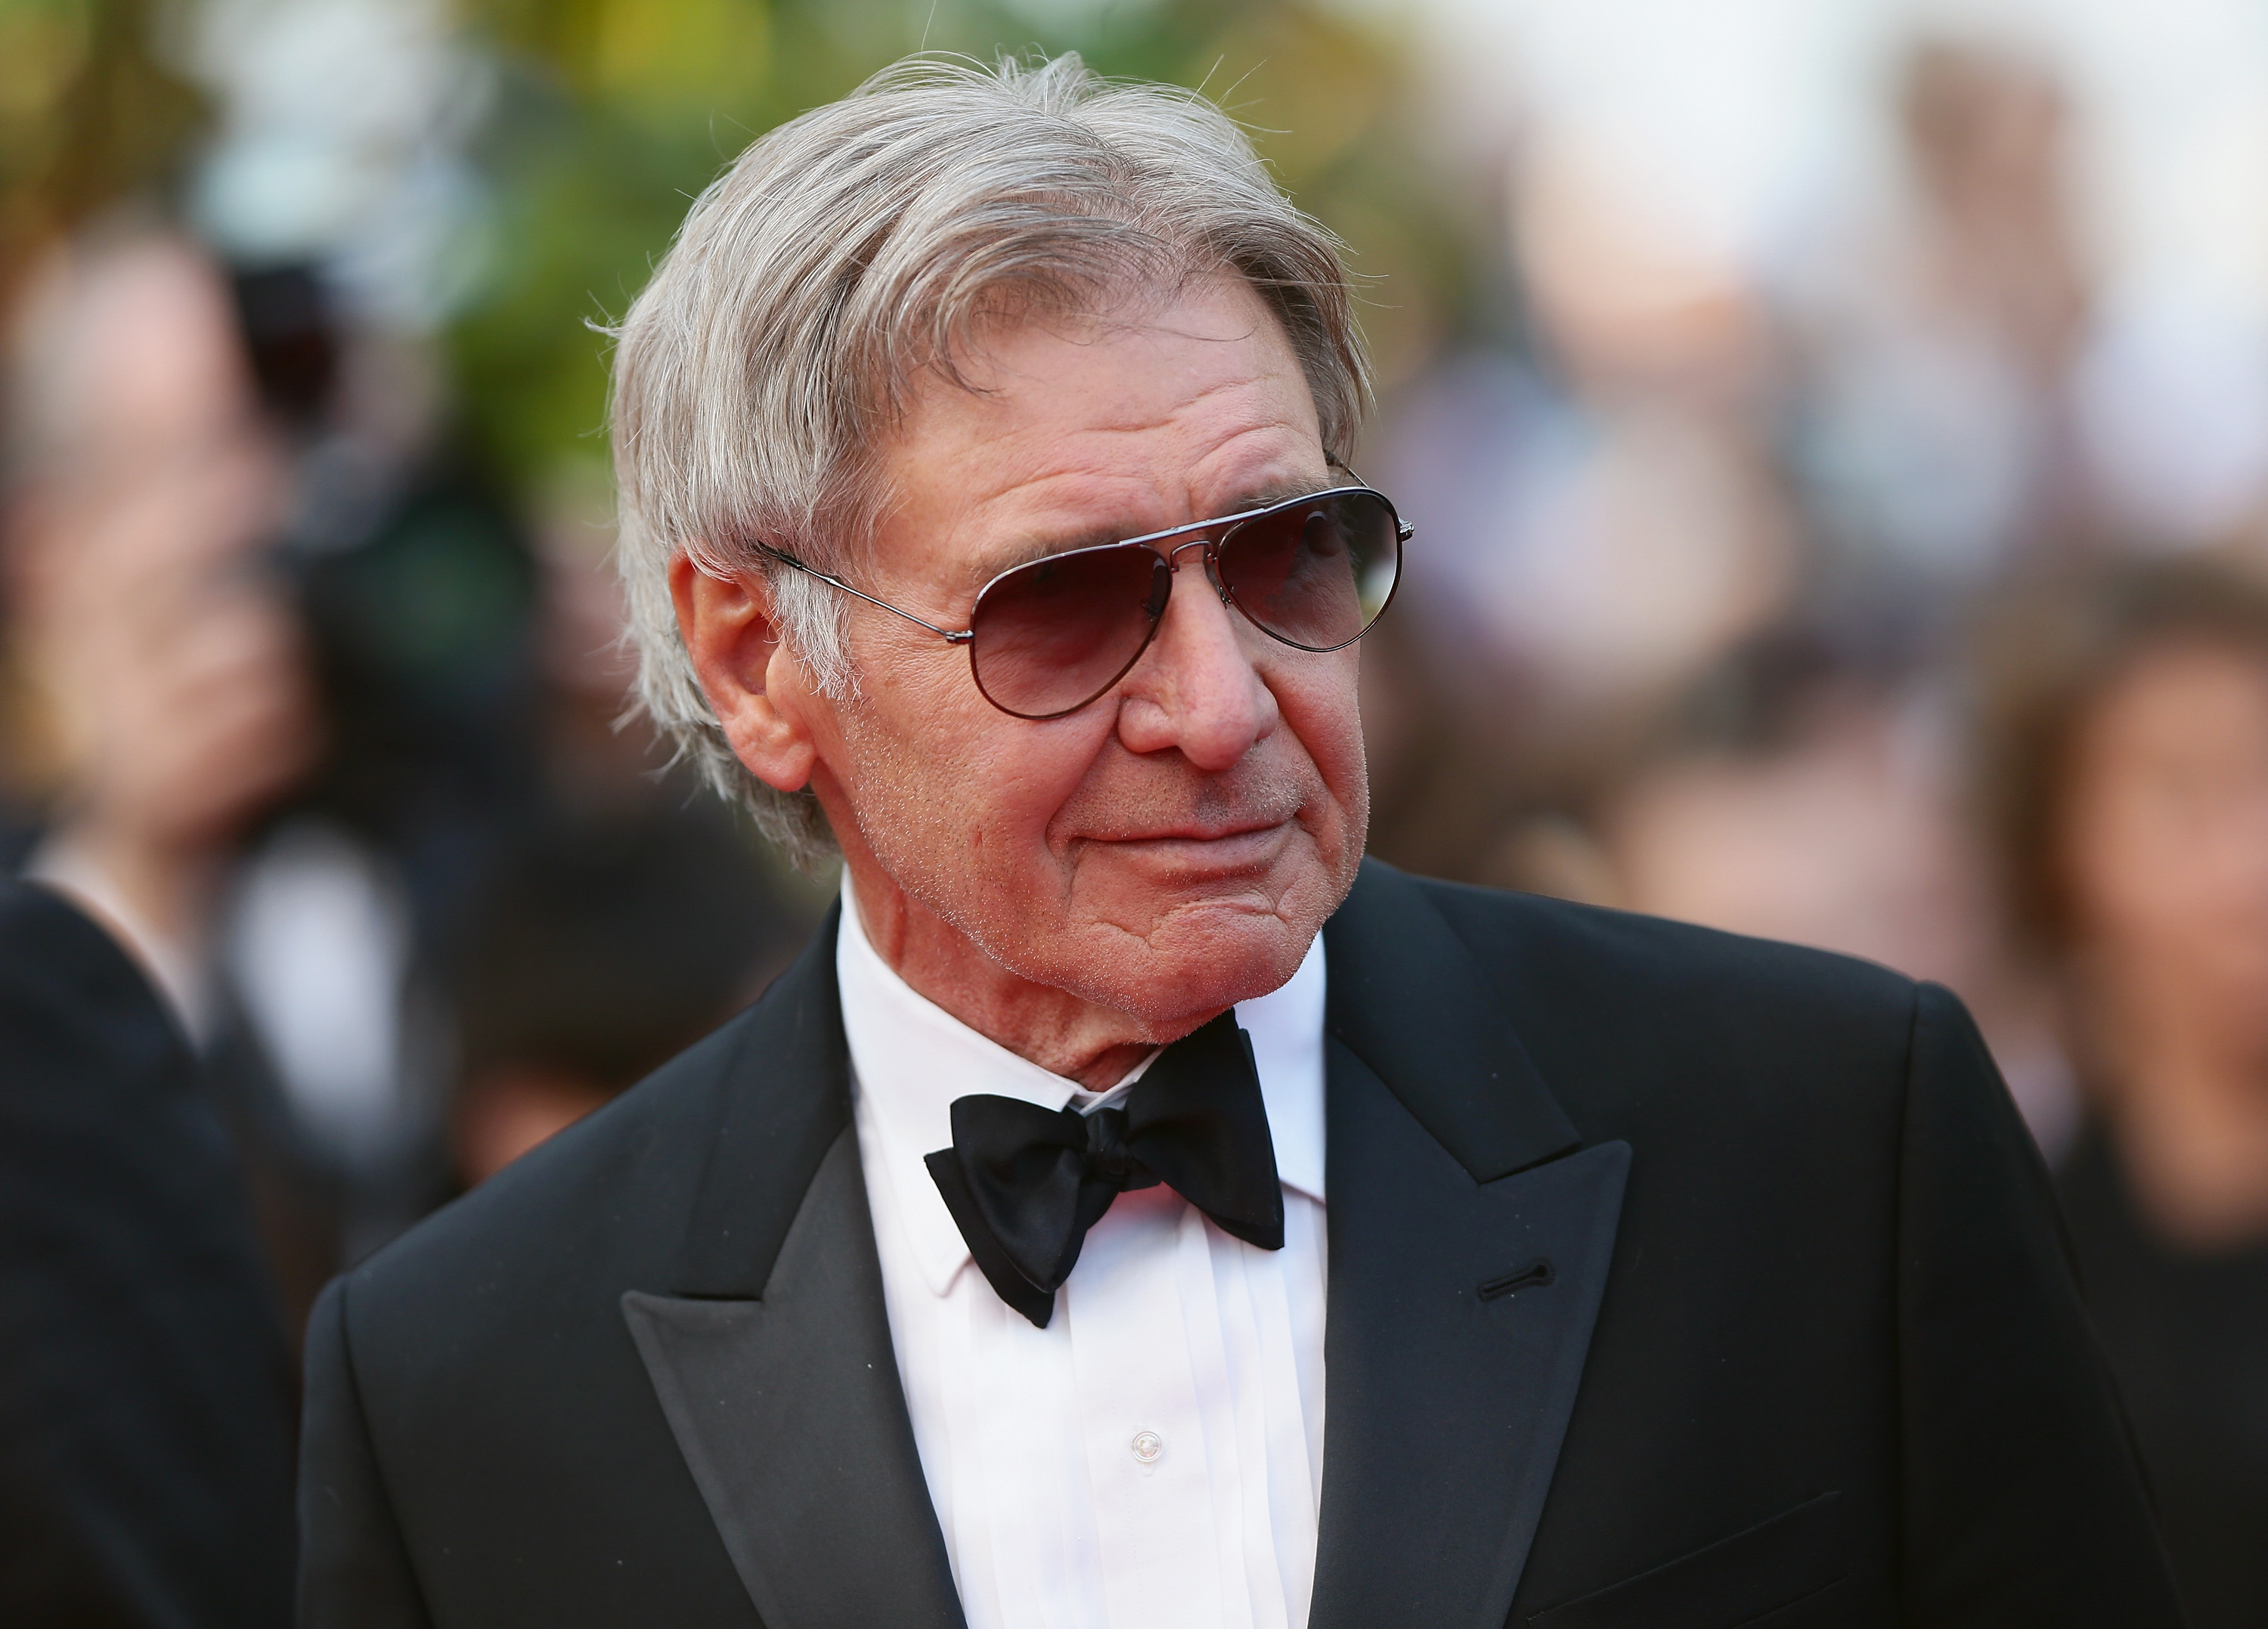 Harrison Ford attends  The Expendables 3  premiere during the 67th Annual Cannes Film Festival on May 18, 2014 in Cannes, France.